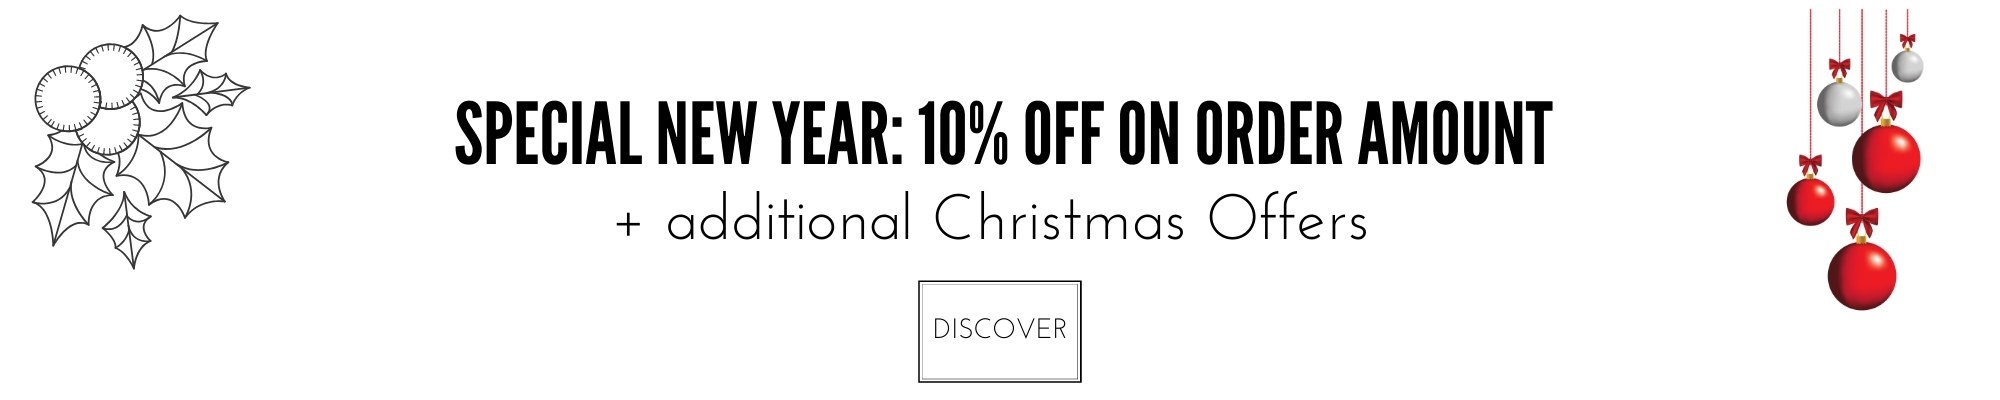 10% OFF on order amount + Additional Christmas Offers